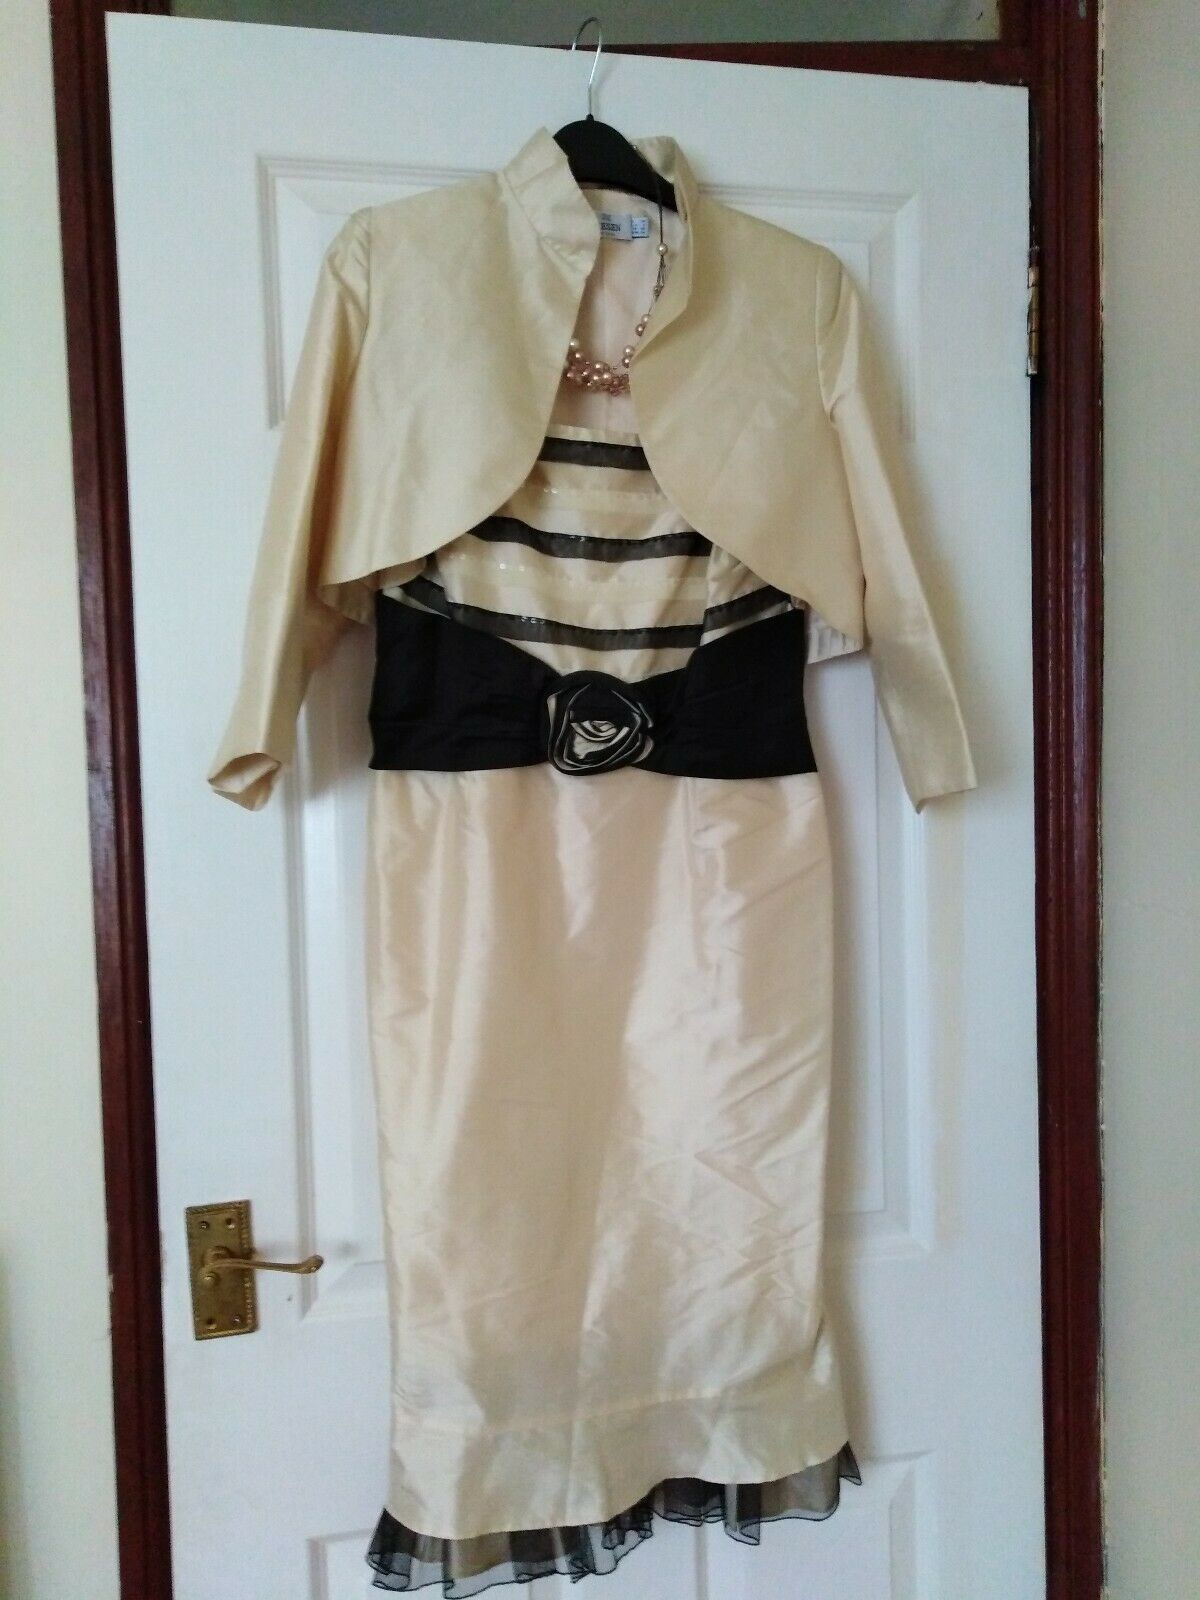 MOTHER OF THE BRIDE/GROOM WEDDING OUTFIT SIZE 8 BY PRESEN